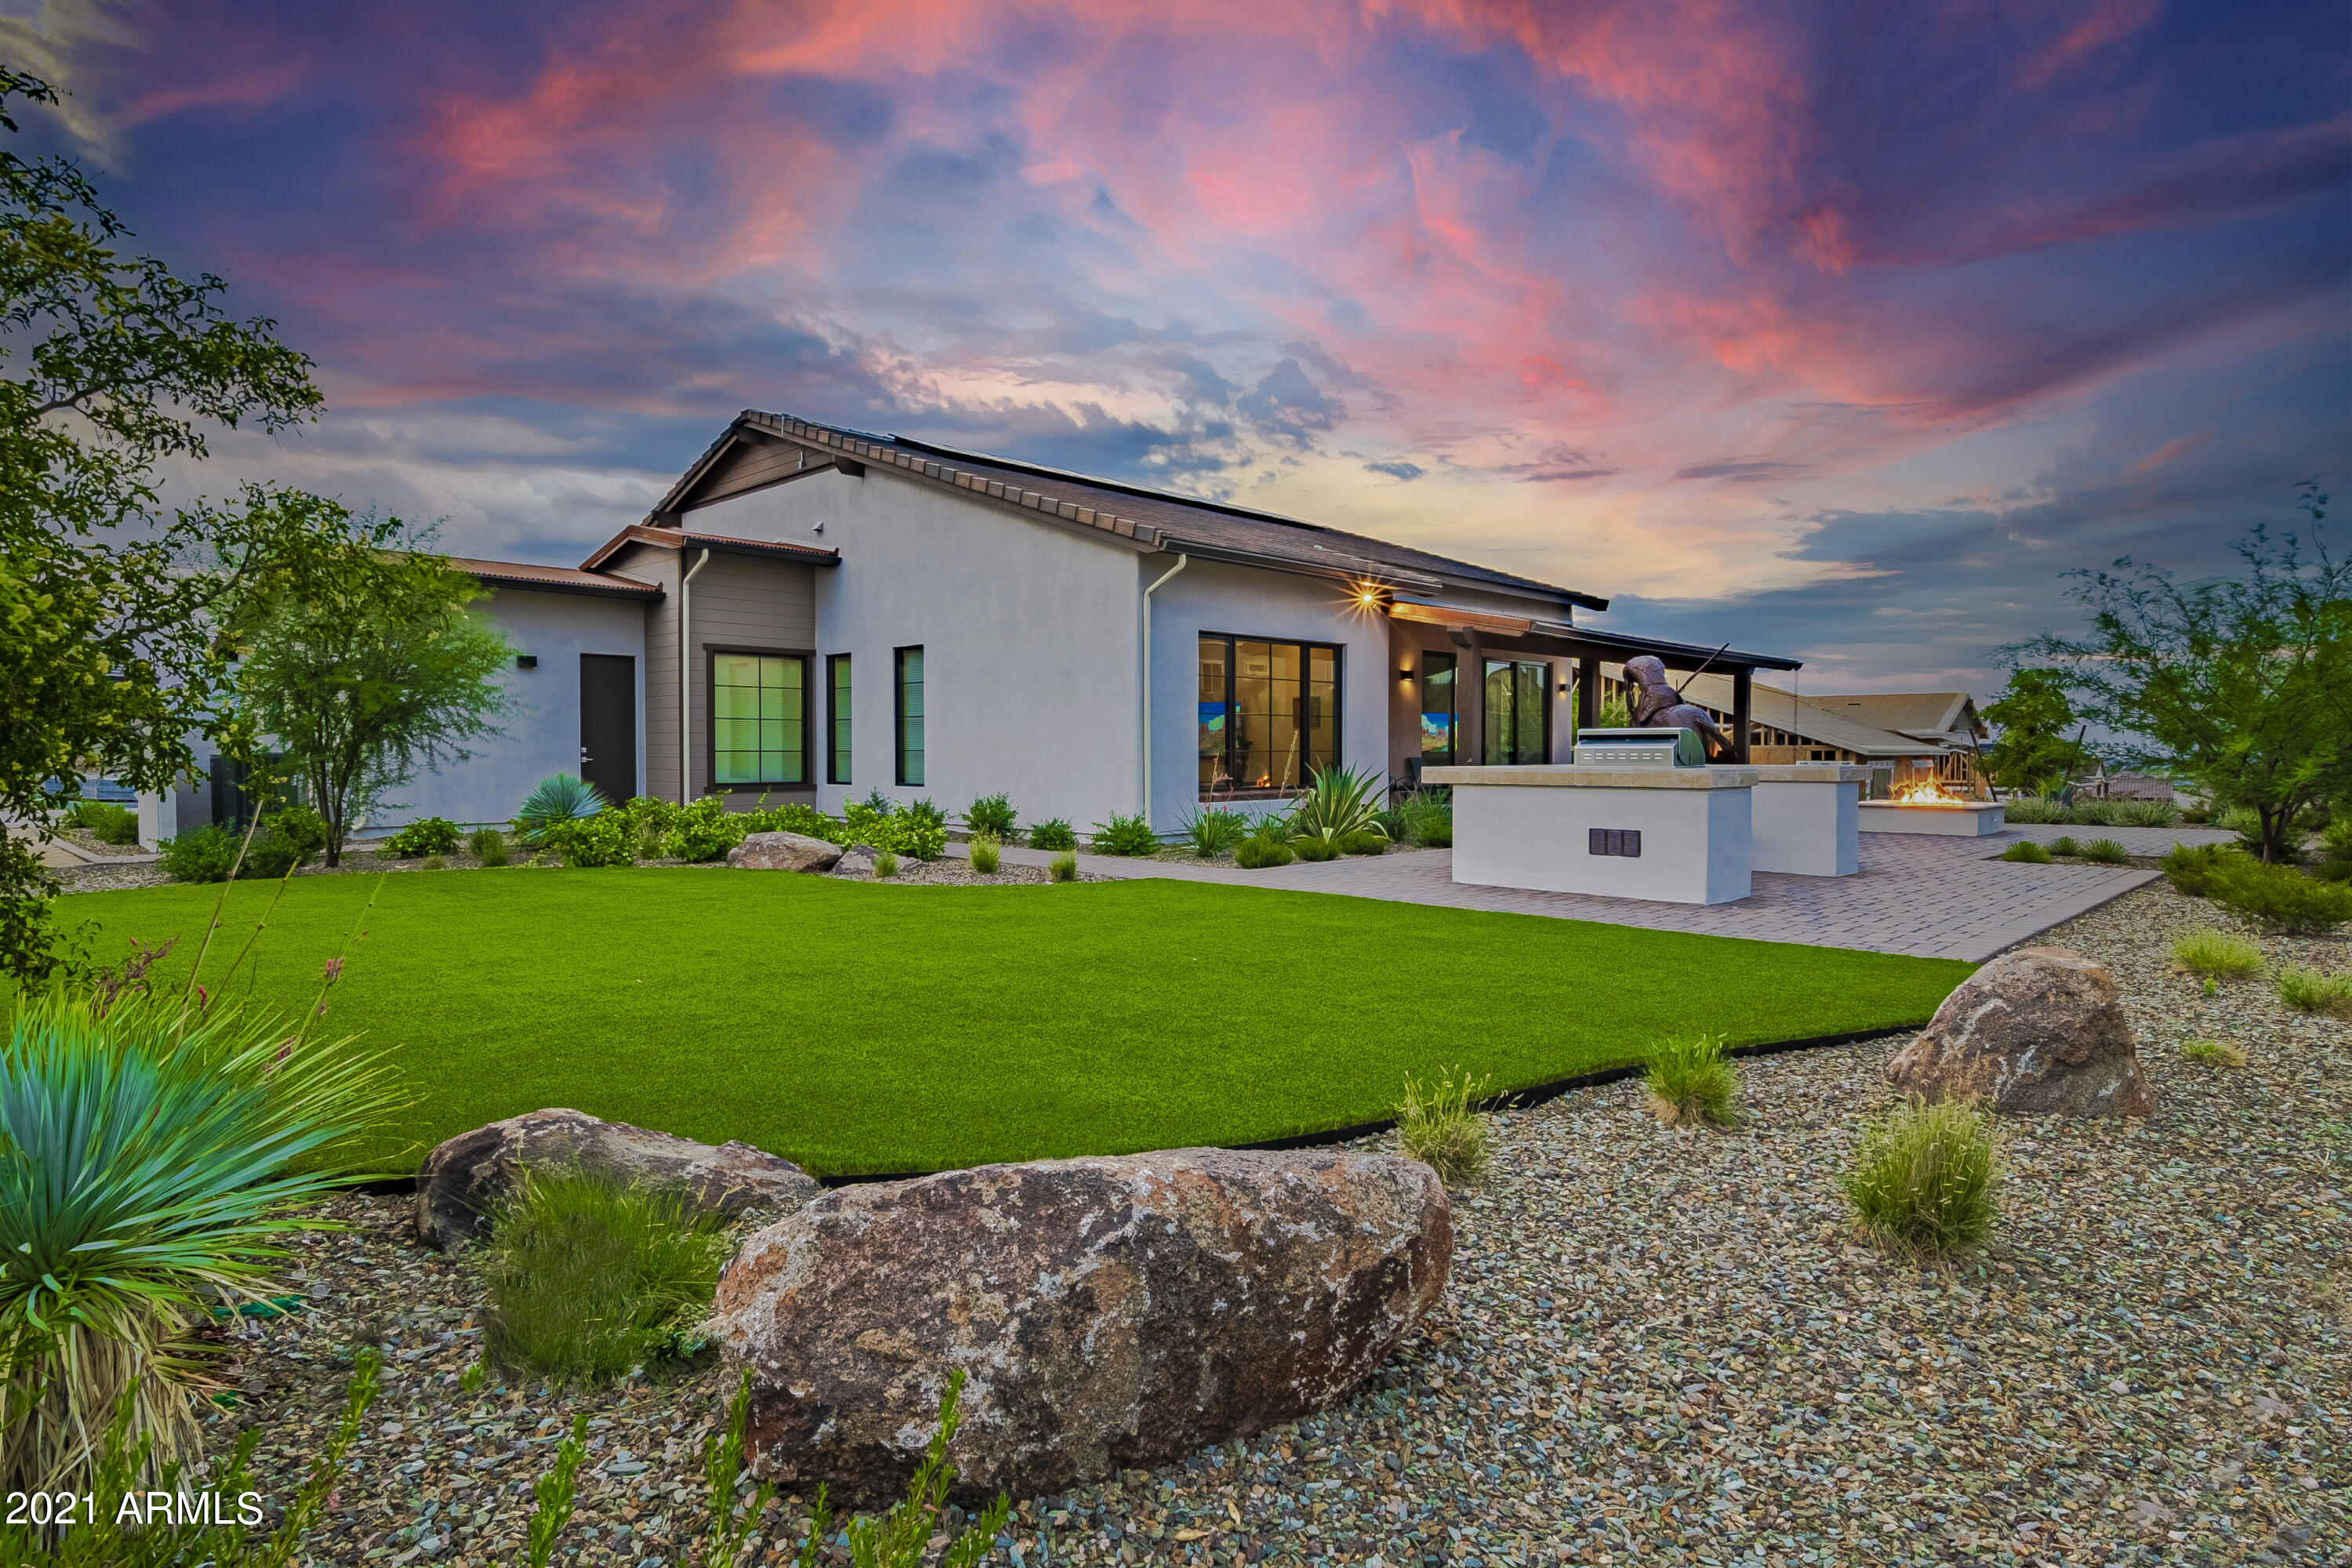 4093 Miners Gulch Way, Wickenburg, Arizona 85390, 2 Bedrooms Bedrooms, ,2.5 BathroomsBathrooms,Residential,For Sale,Miners Gulch,6266376